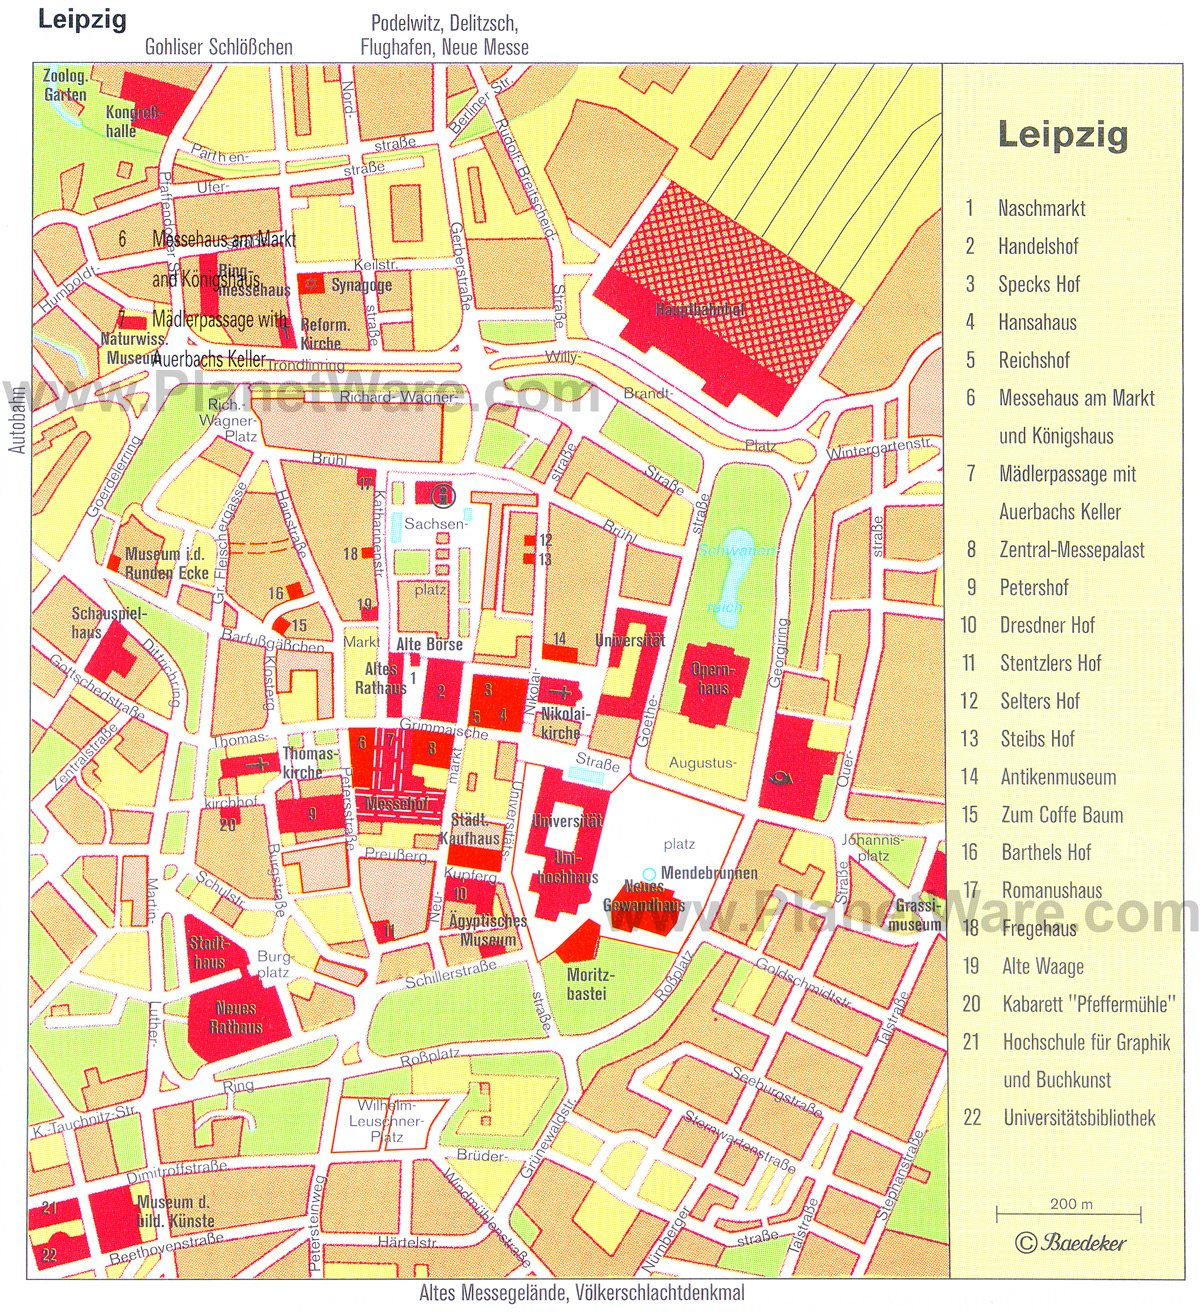 14 TopRated Tourist Attractions in Leipzig – Berlin City Map Tourist